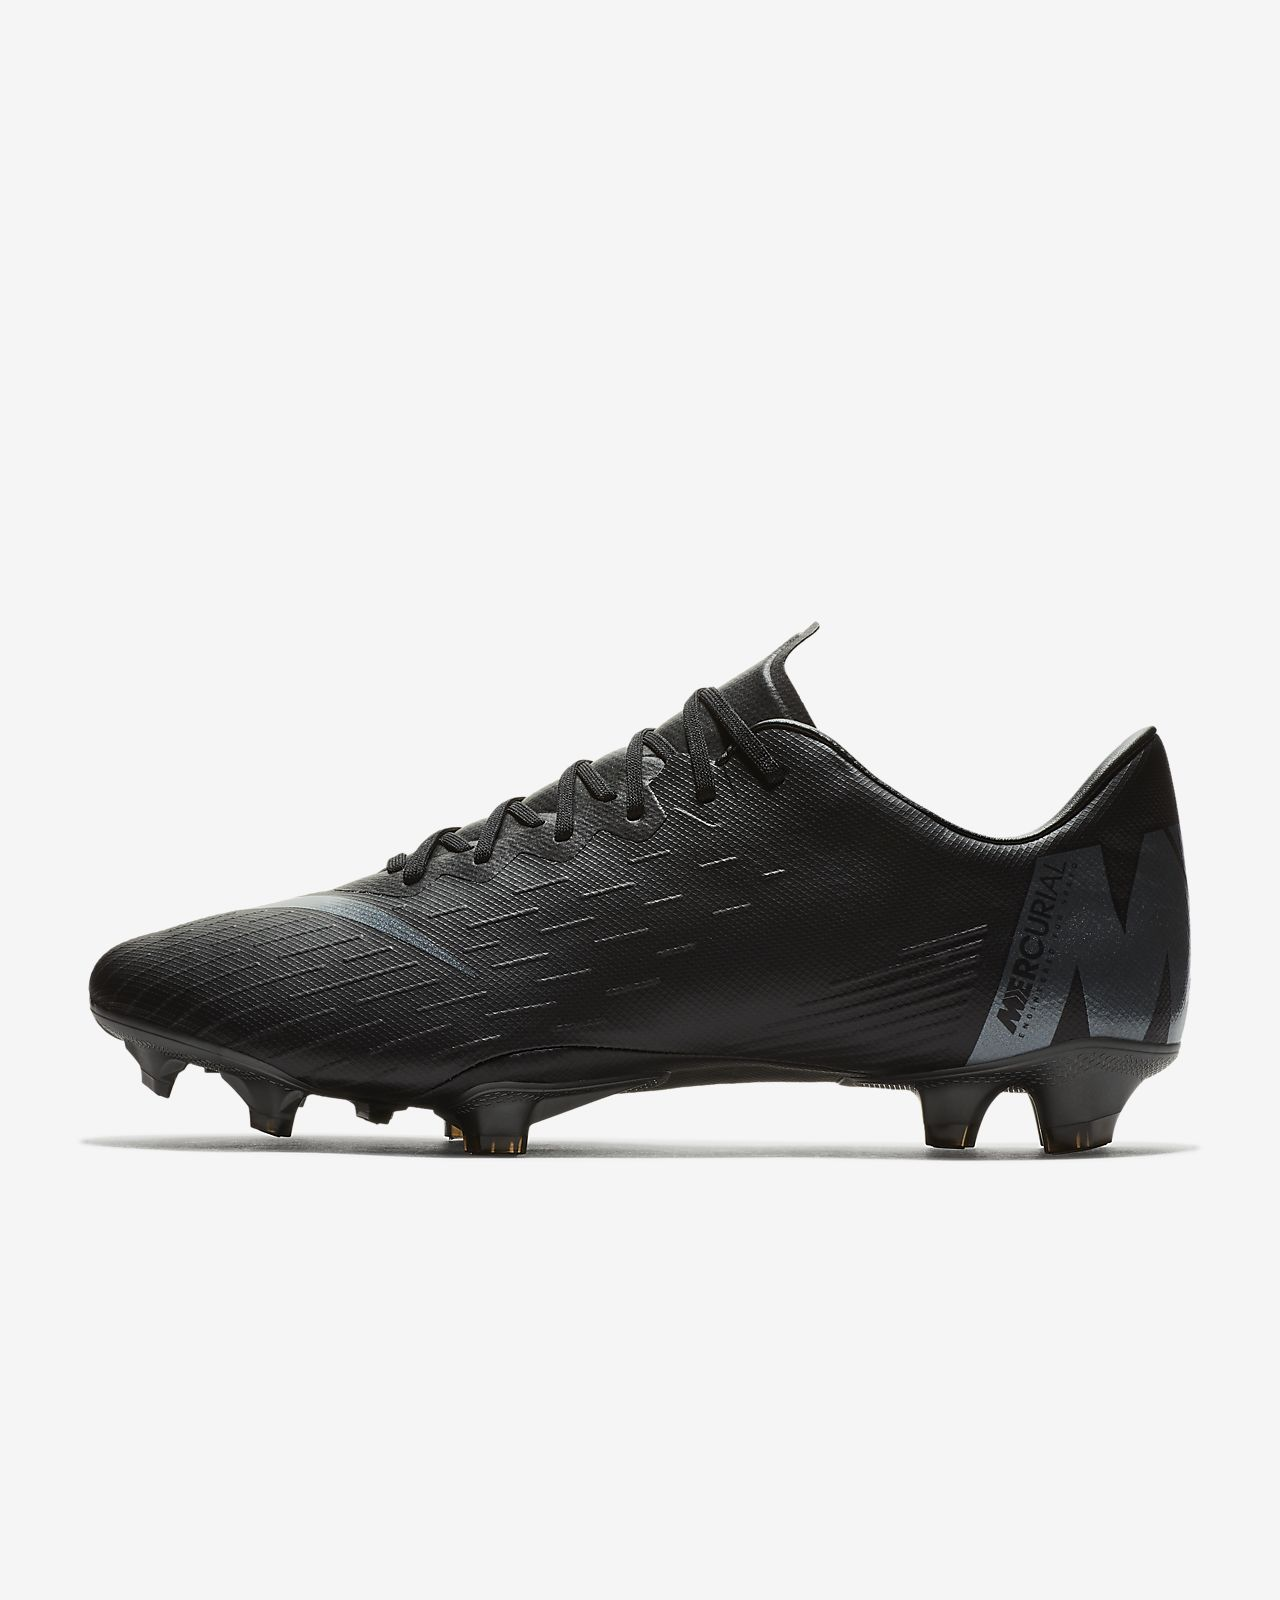 132cfced42a ... where can i buy nike mercurial vapor xii pro firm ground football boot  1a559 1fe66